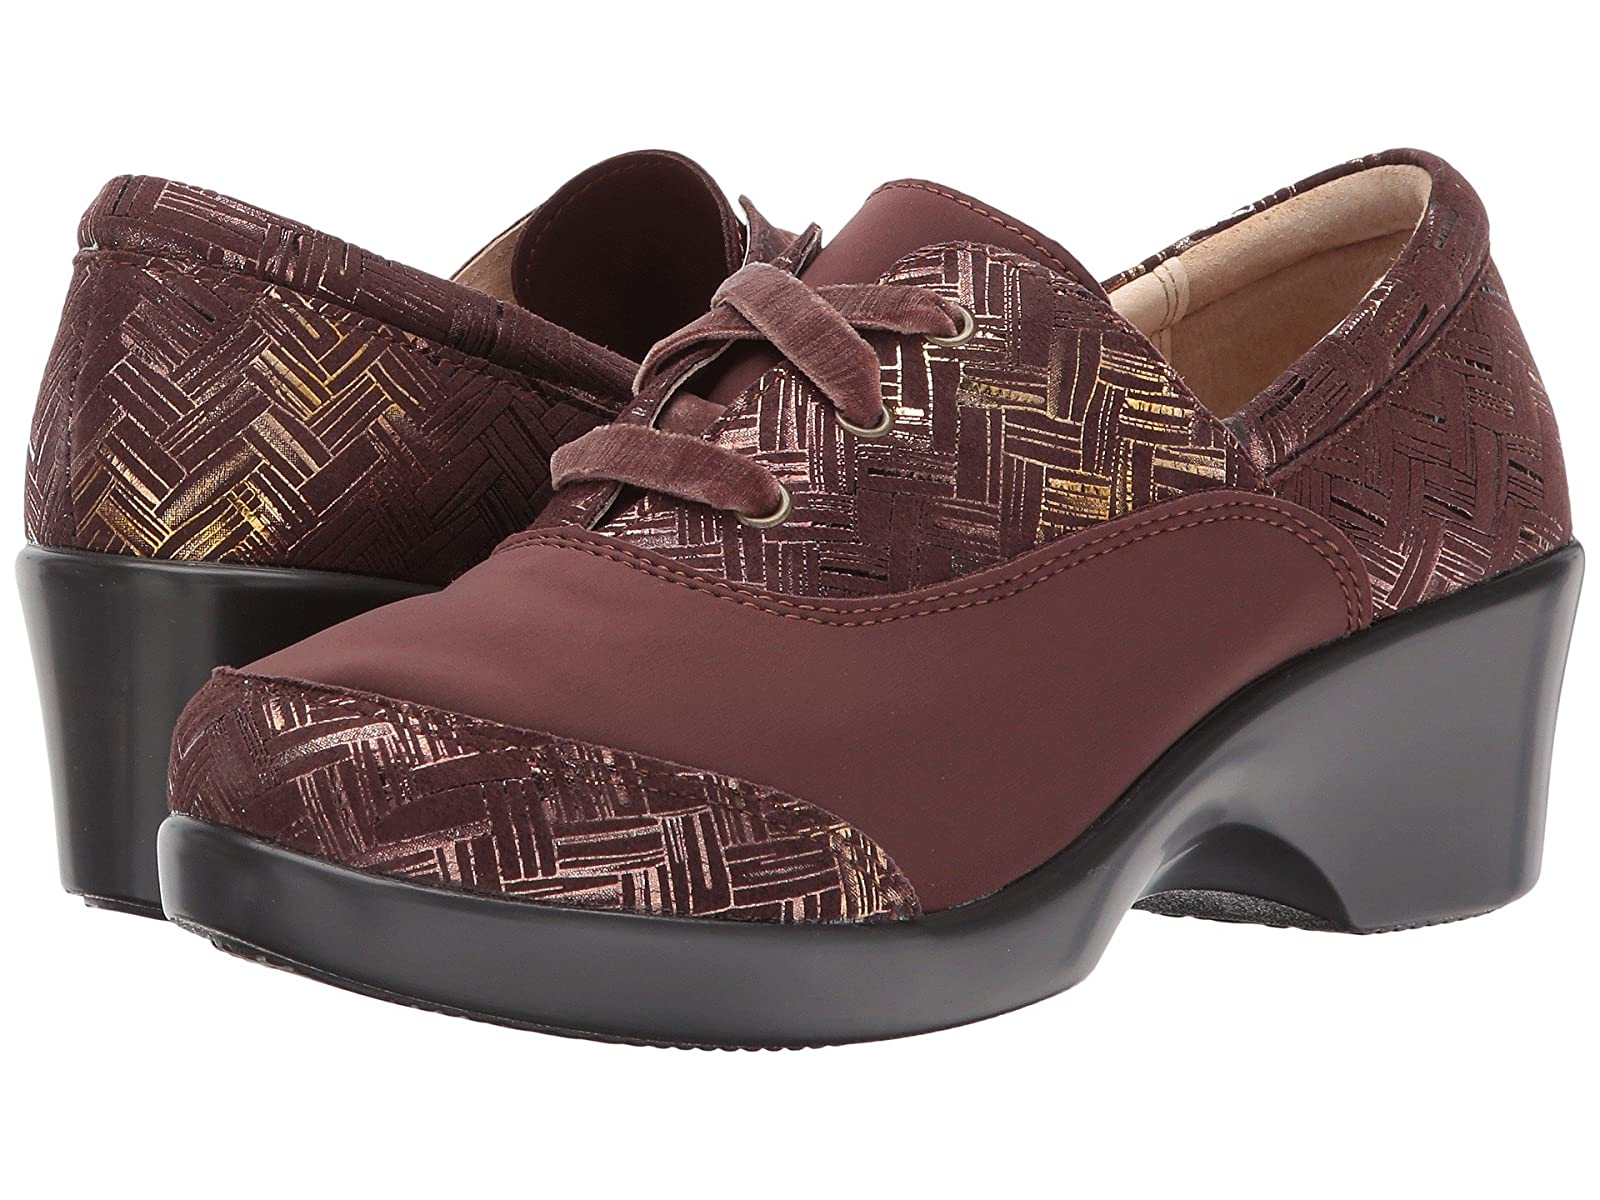 Alegria MadiCheap and distinctive eye-catching shoes